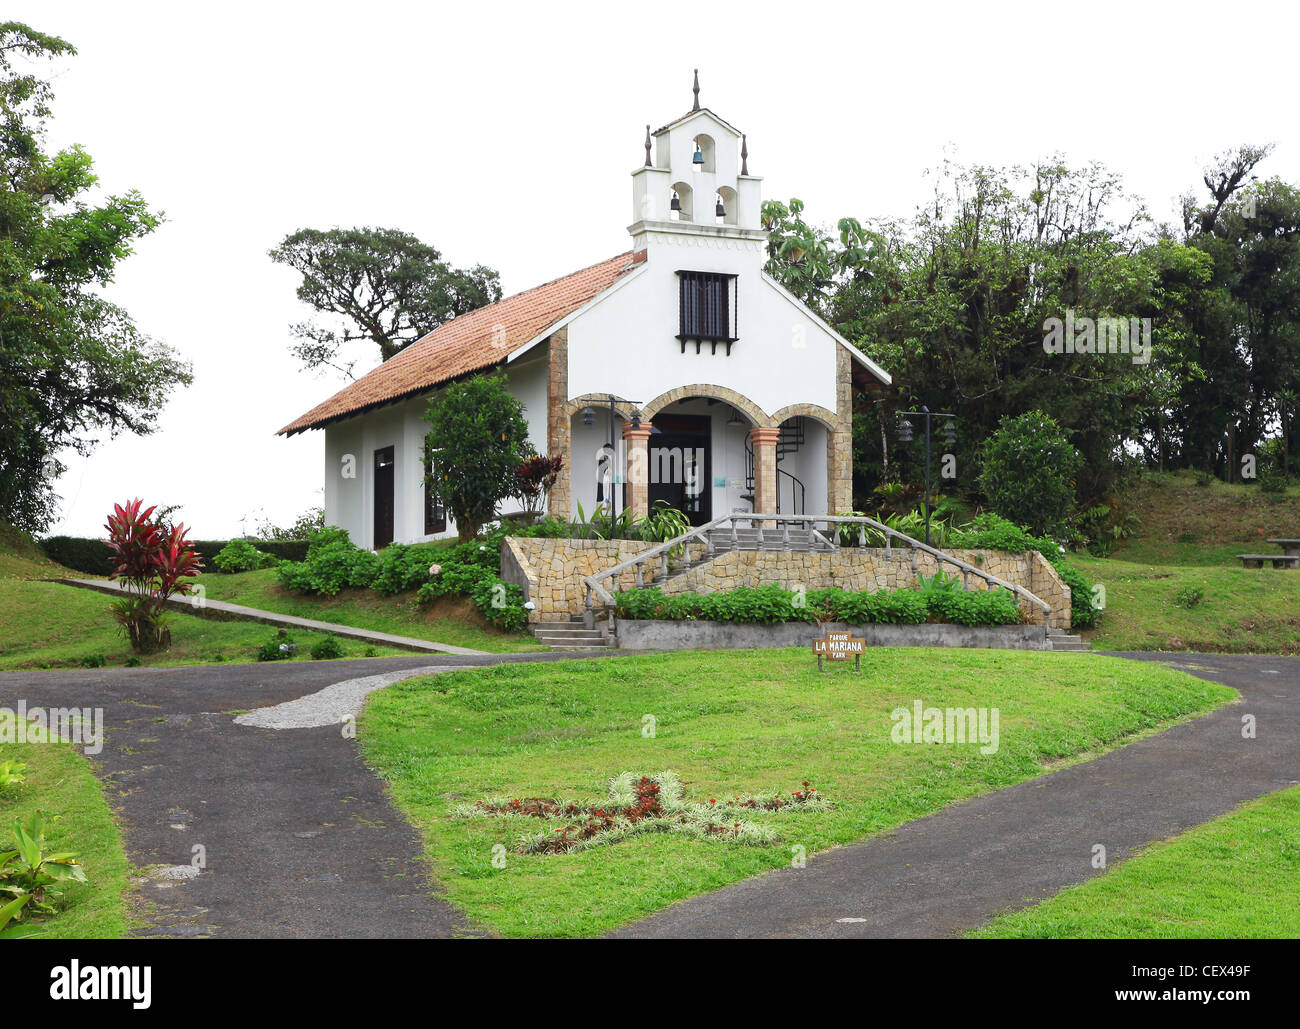 Wedding chapel stock photos wedding chapel stock images alamy la mariana wedding chapel villa blanca los angeles cloud forest reserve costa rica central america junglespirit Image collections